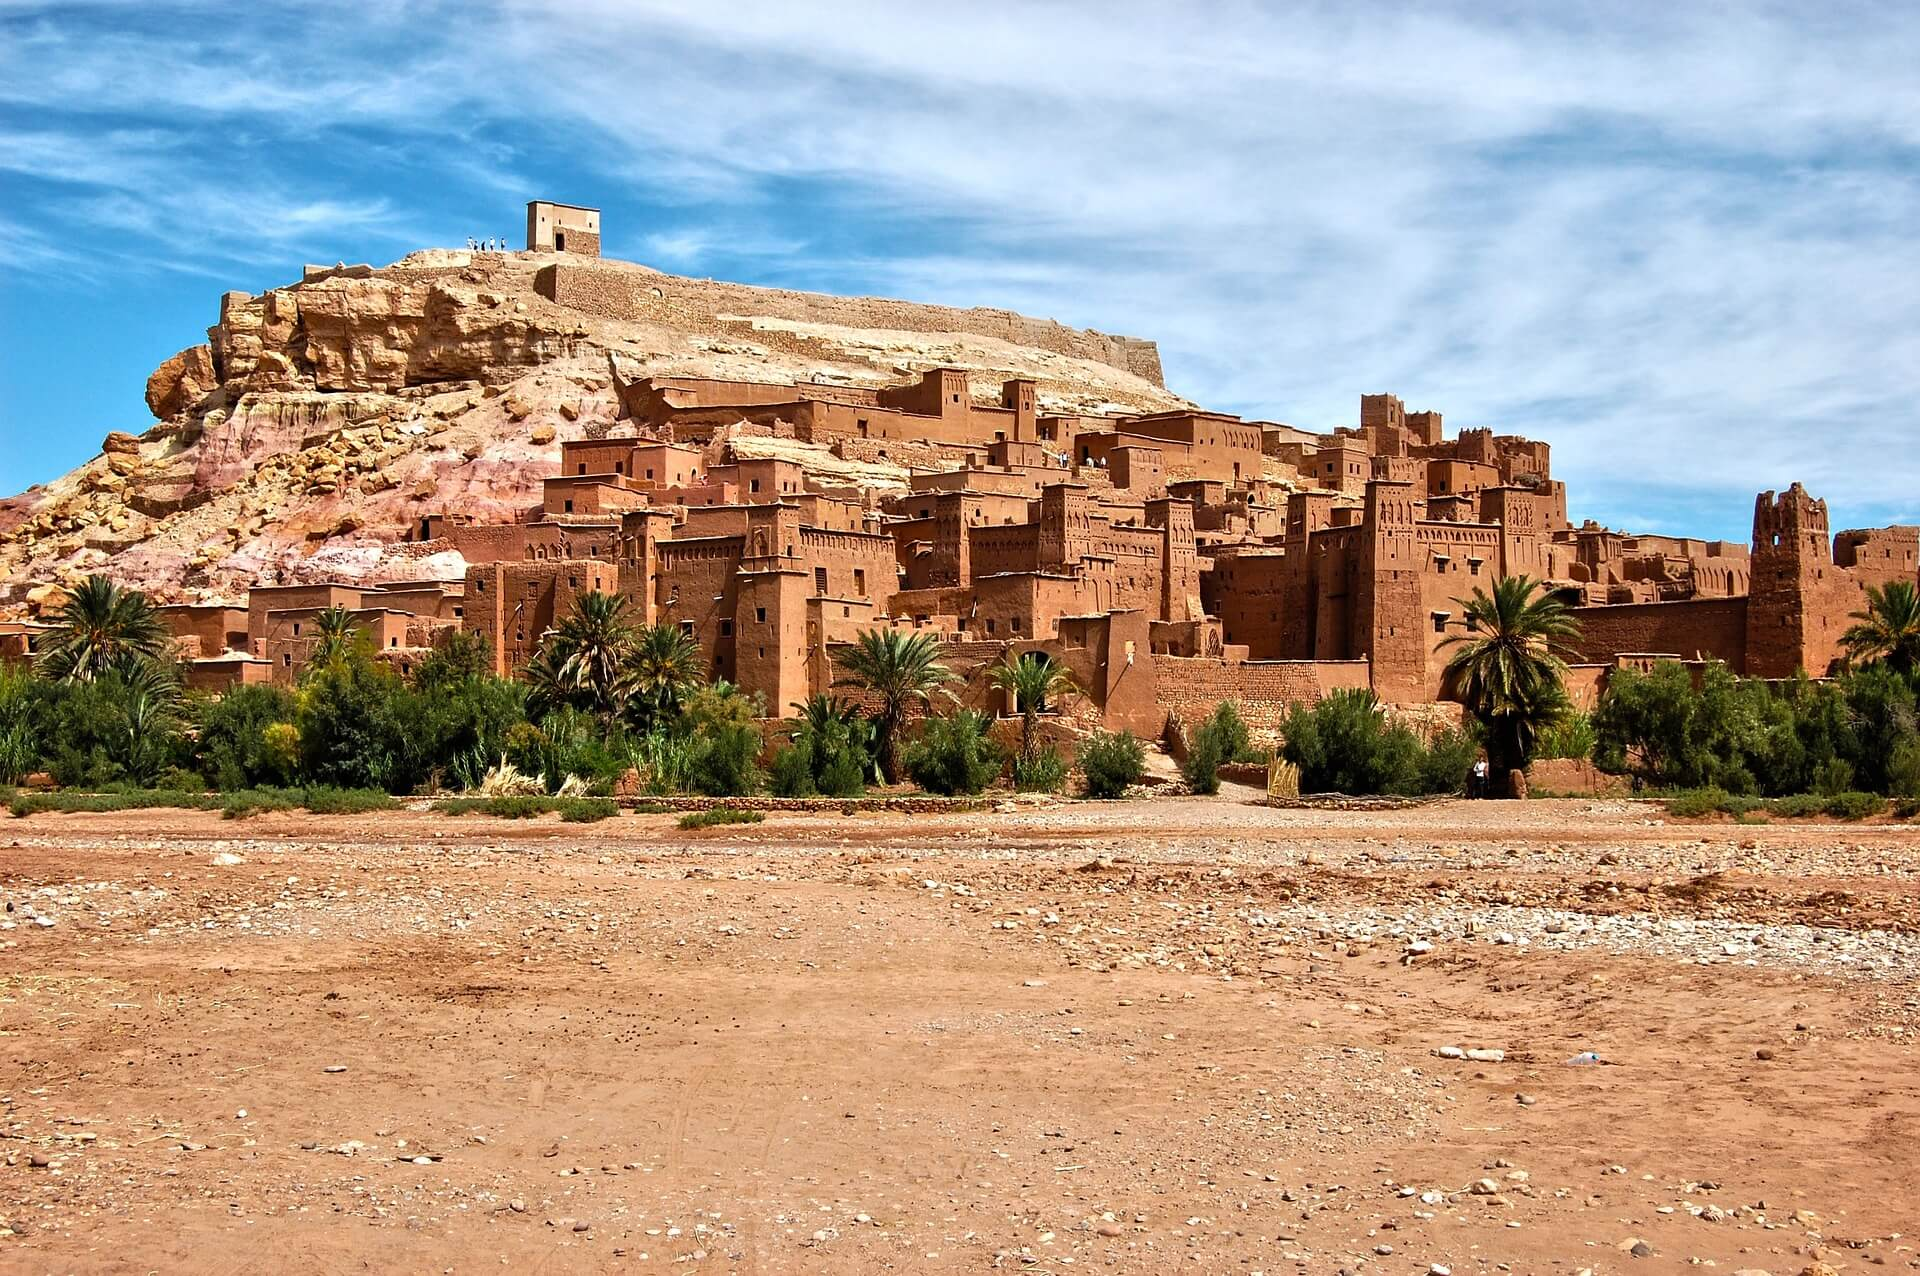 Sahara Desert Tour - Get To Know Morocco